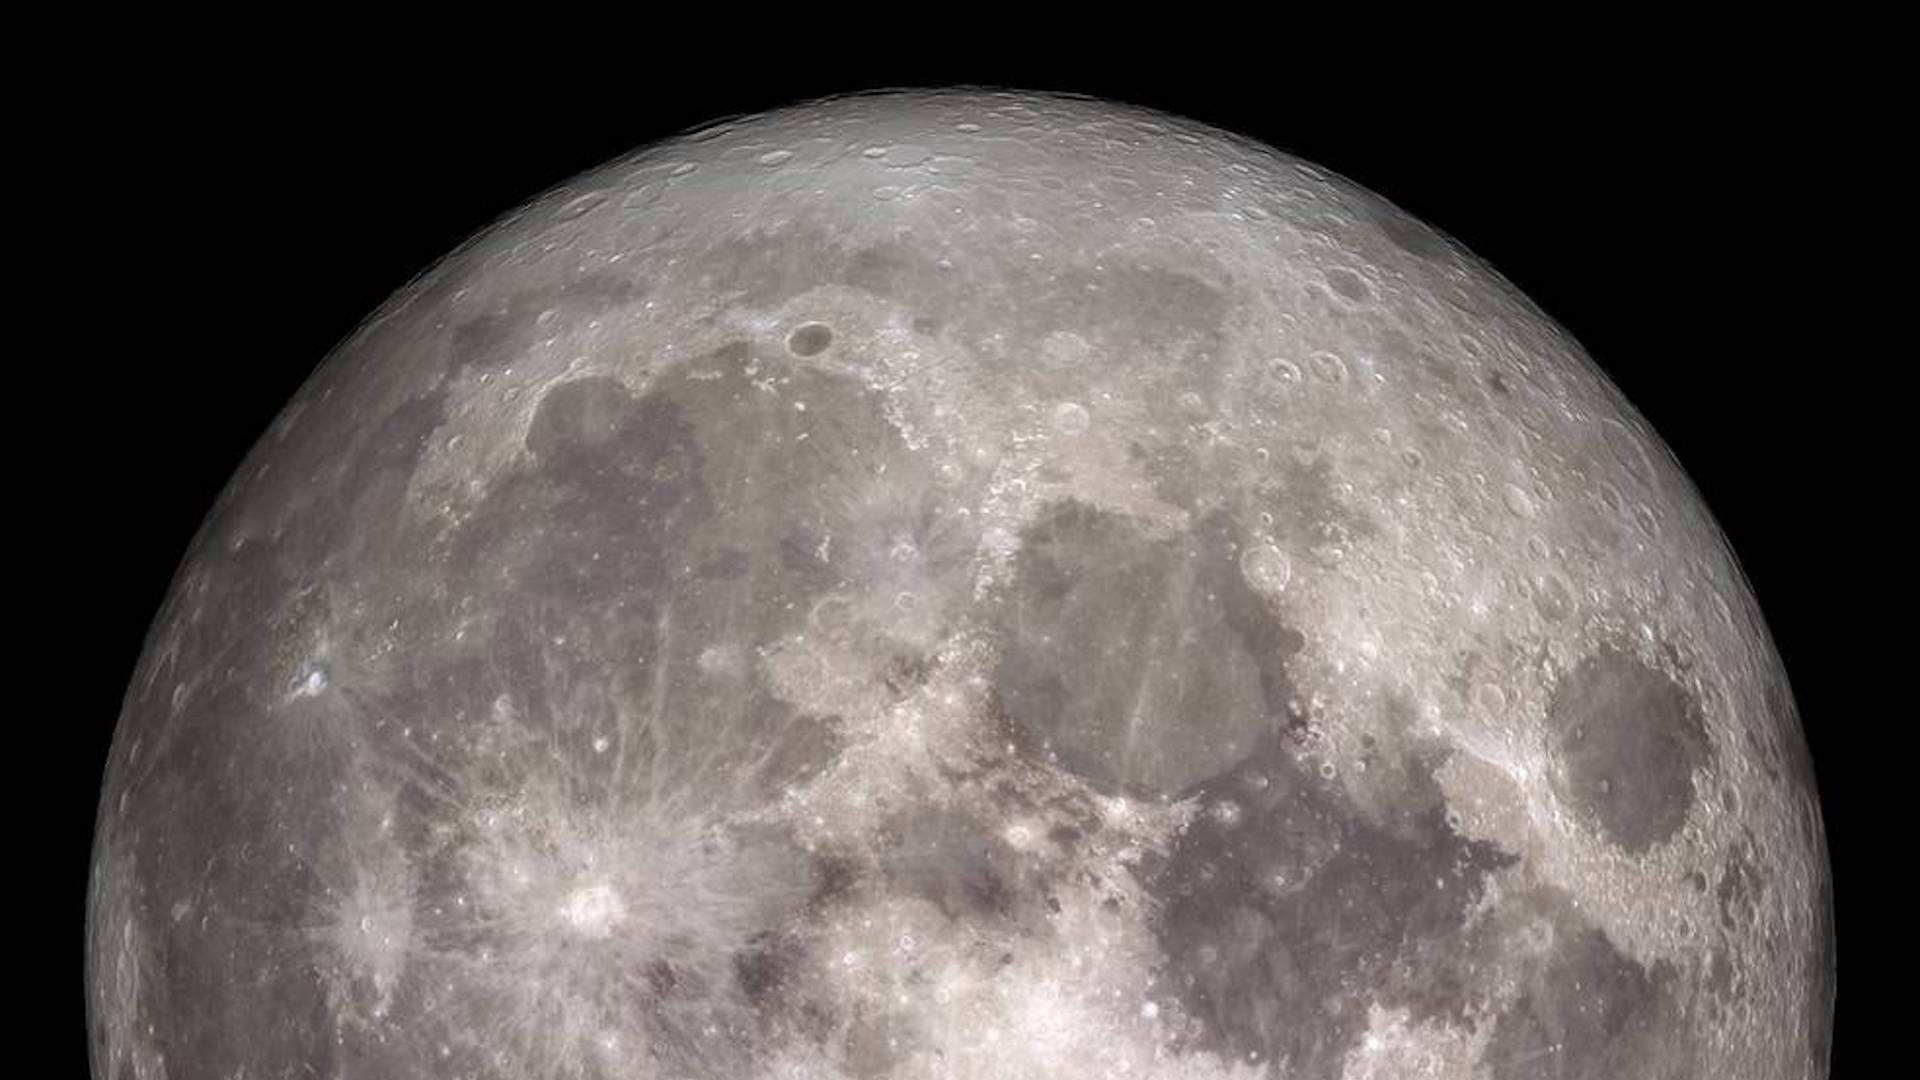 The Moon in full view